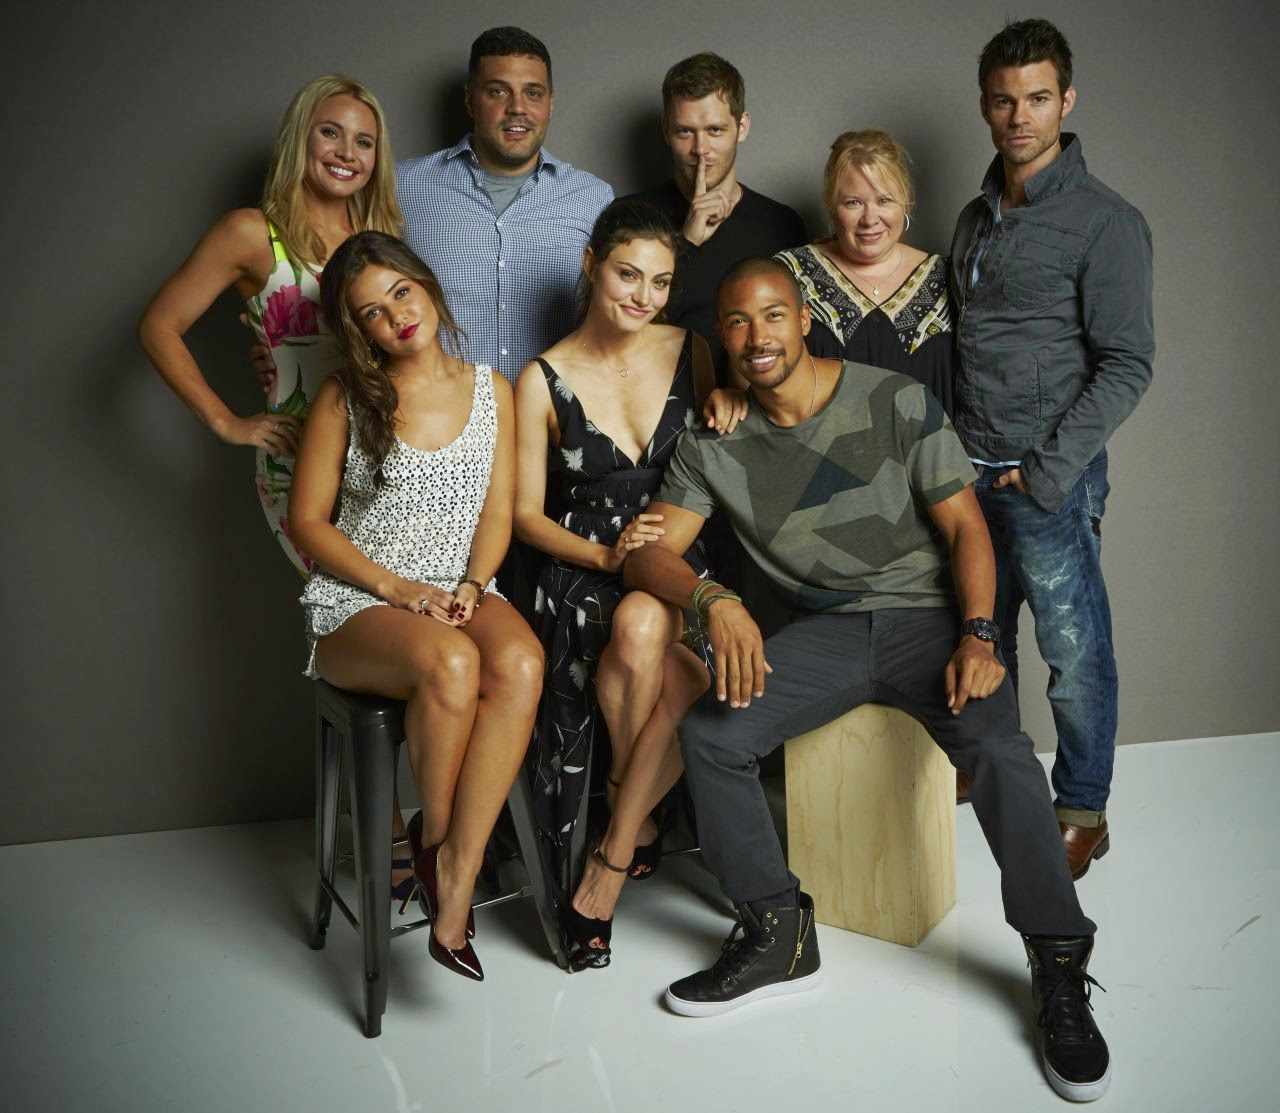 Cast of 'The Originals' promote the series at Comic-Con 2014